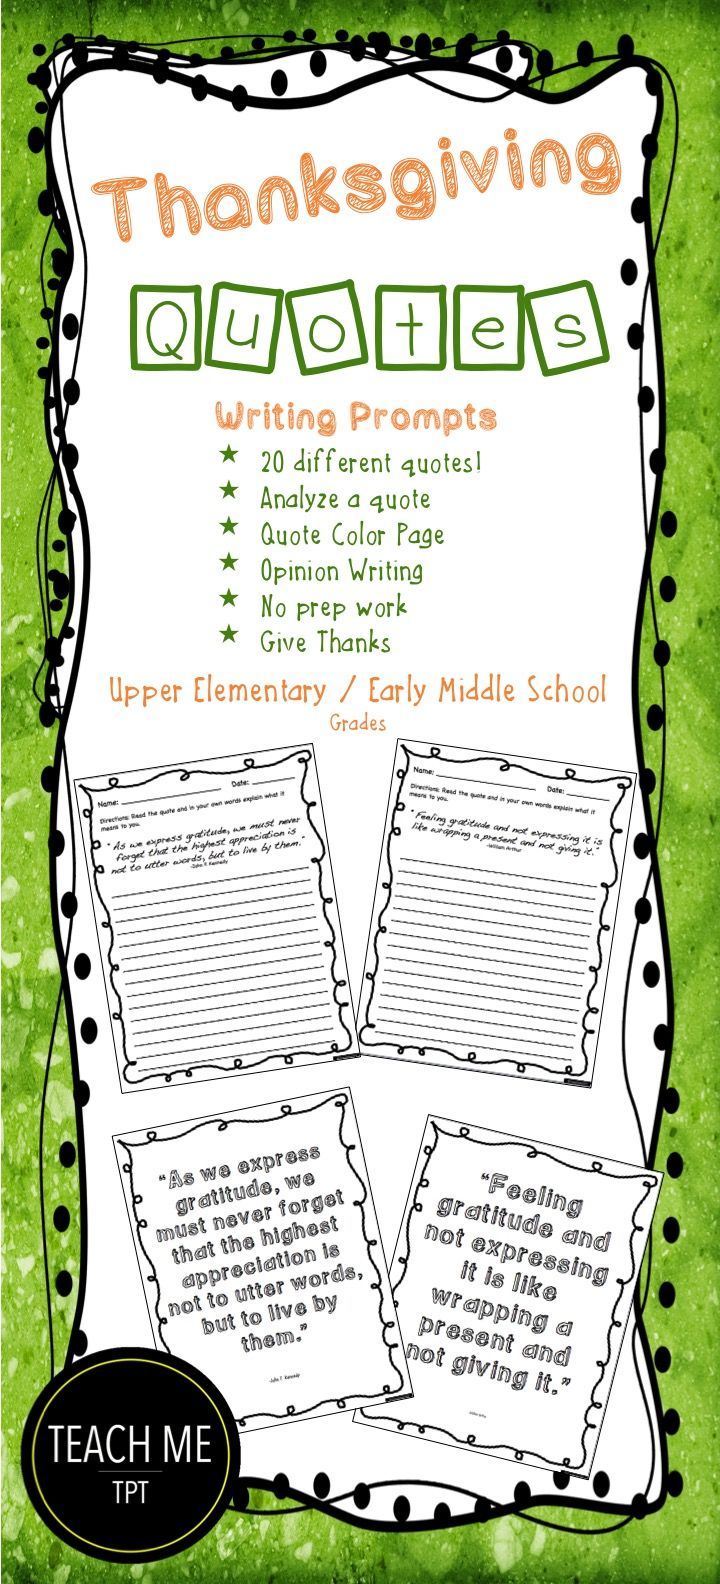 thanksgiving quotes writing prompts | teach me tpt | pinterest